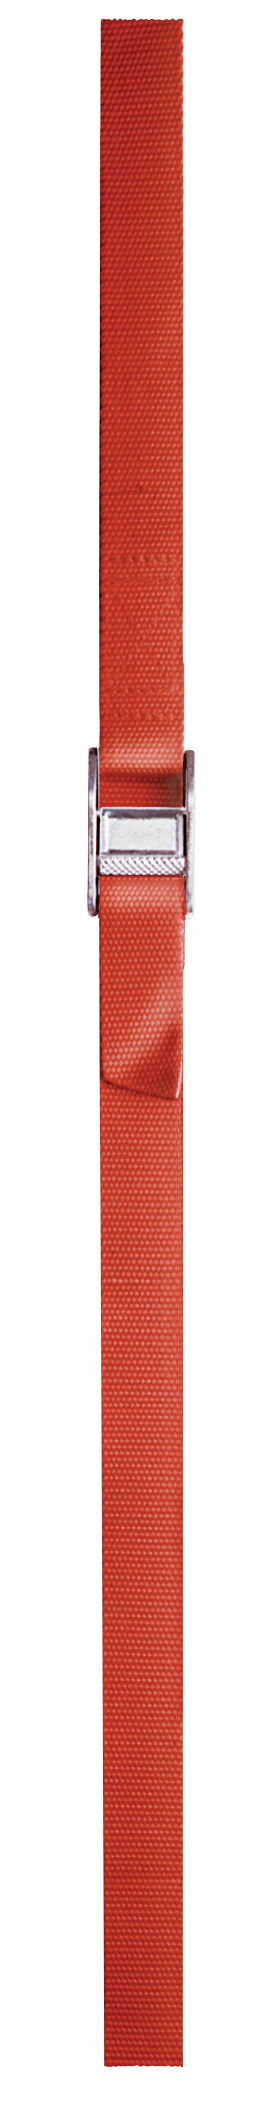 DOTTIE WS02 2FT WEB STRAP (RED)